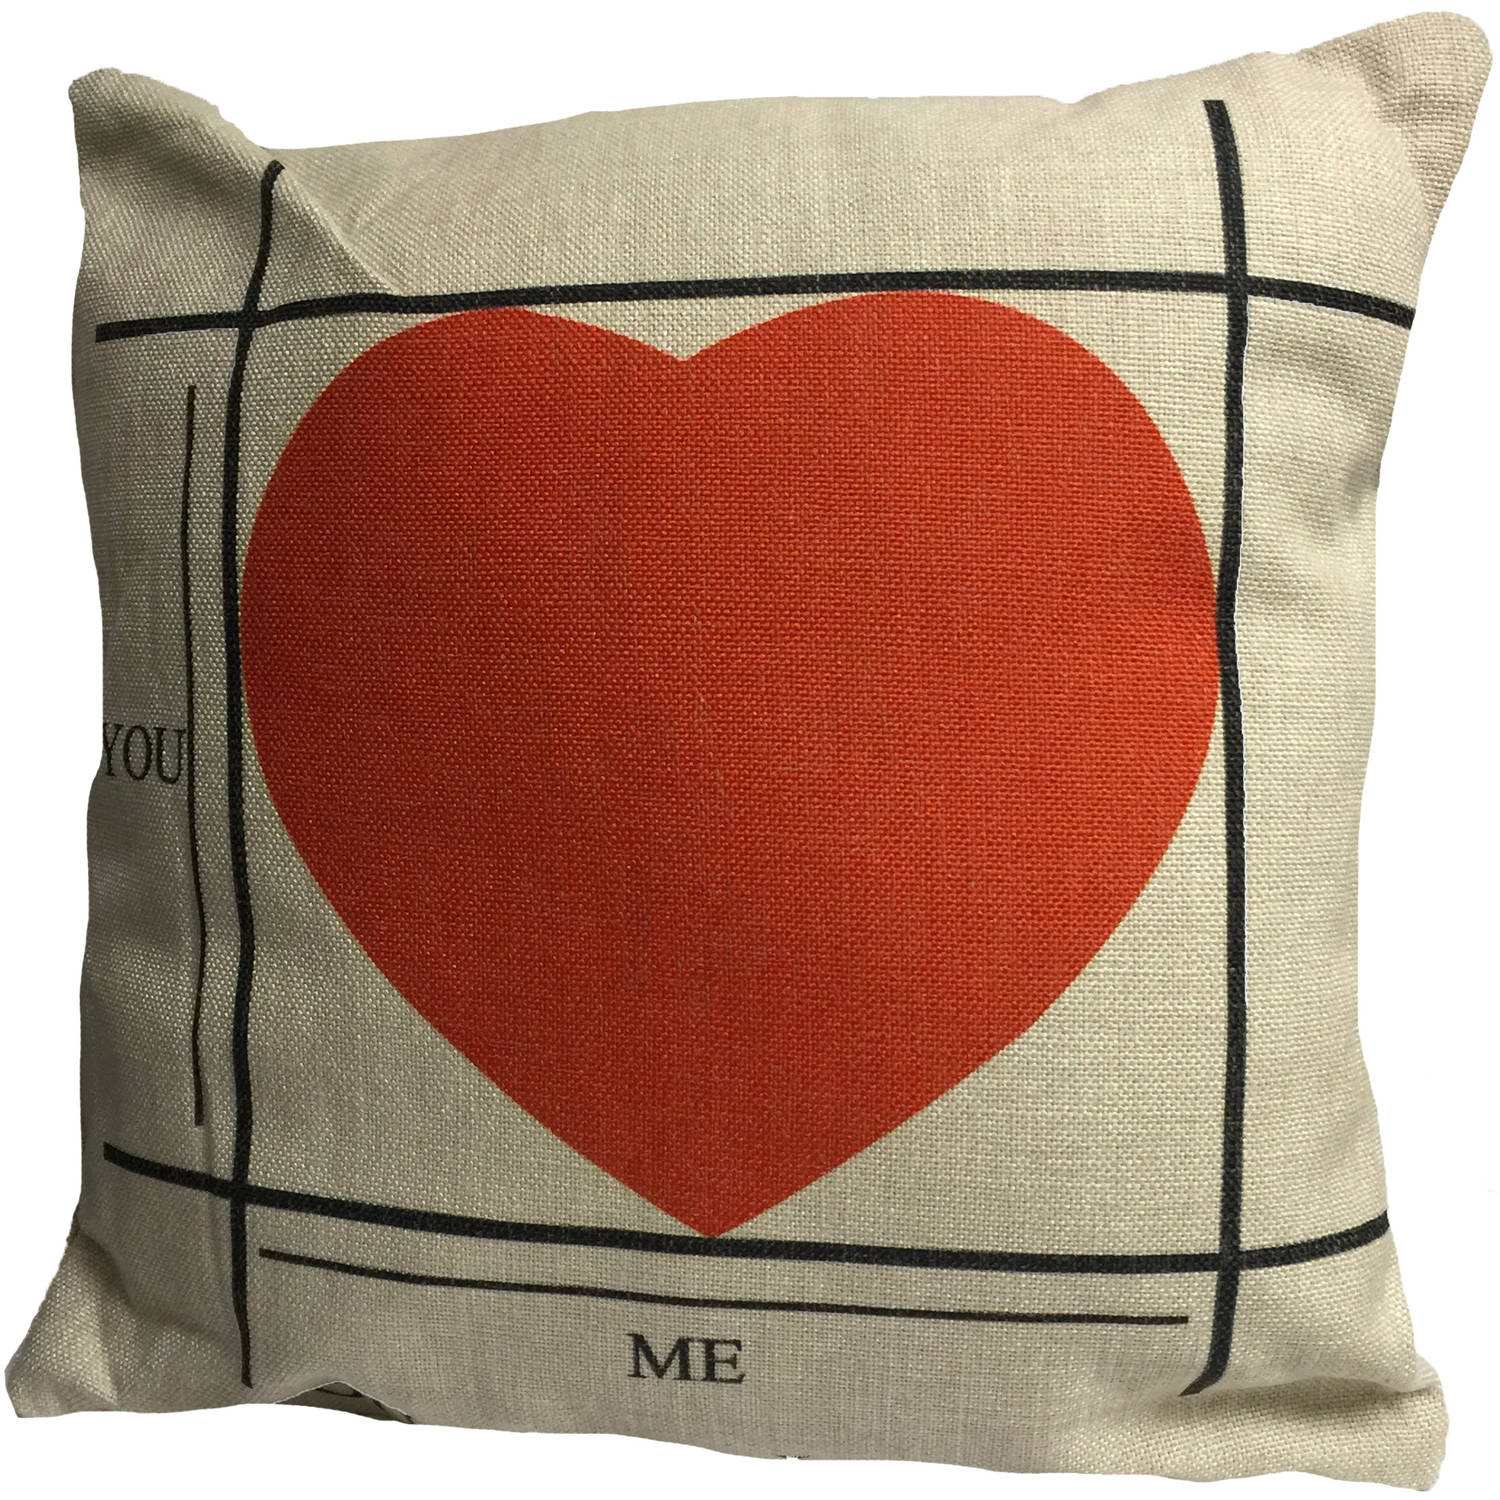 Creative Motion Cushion with Heart Design